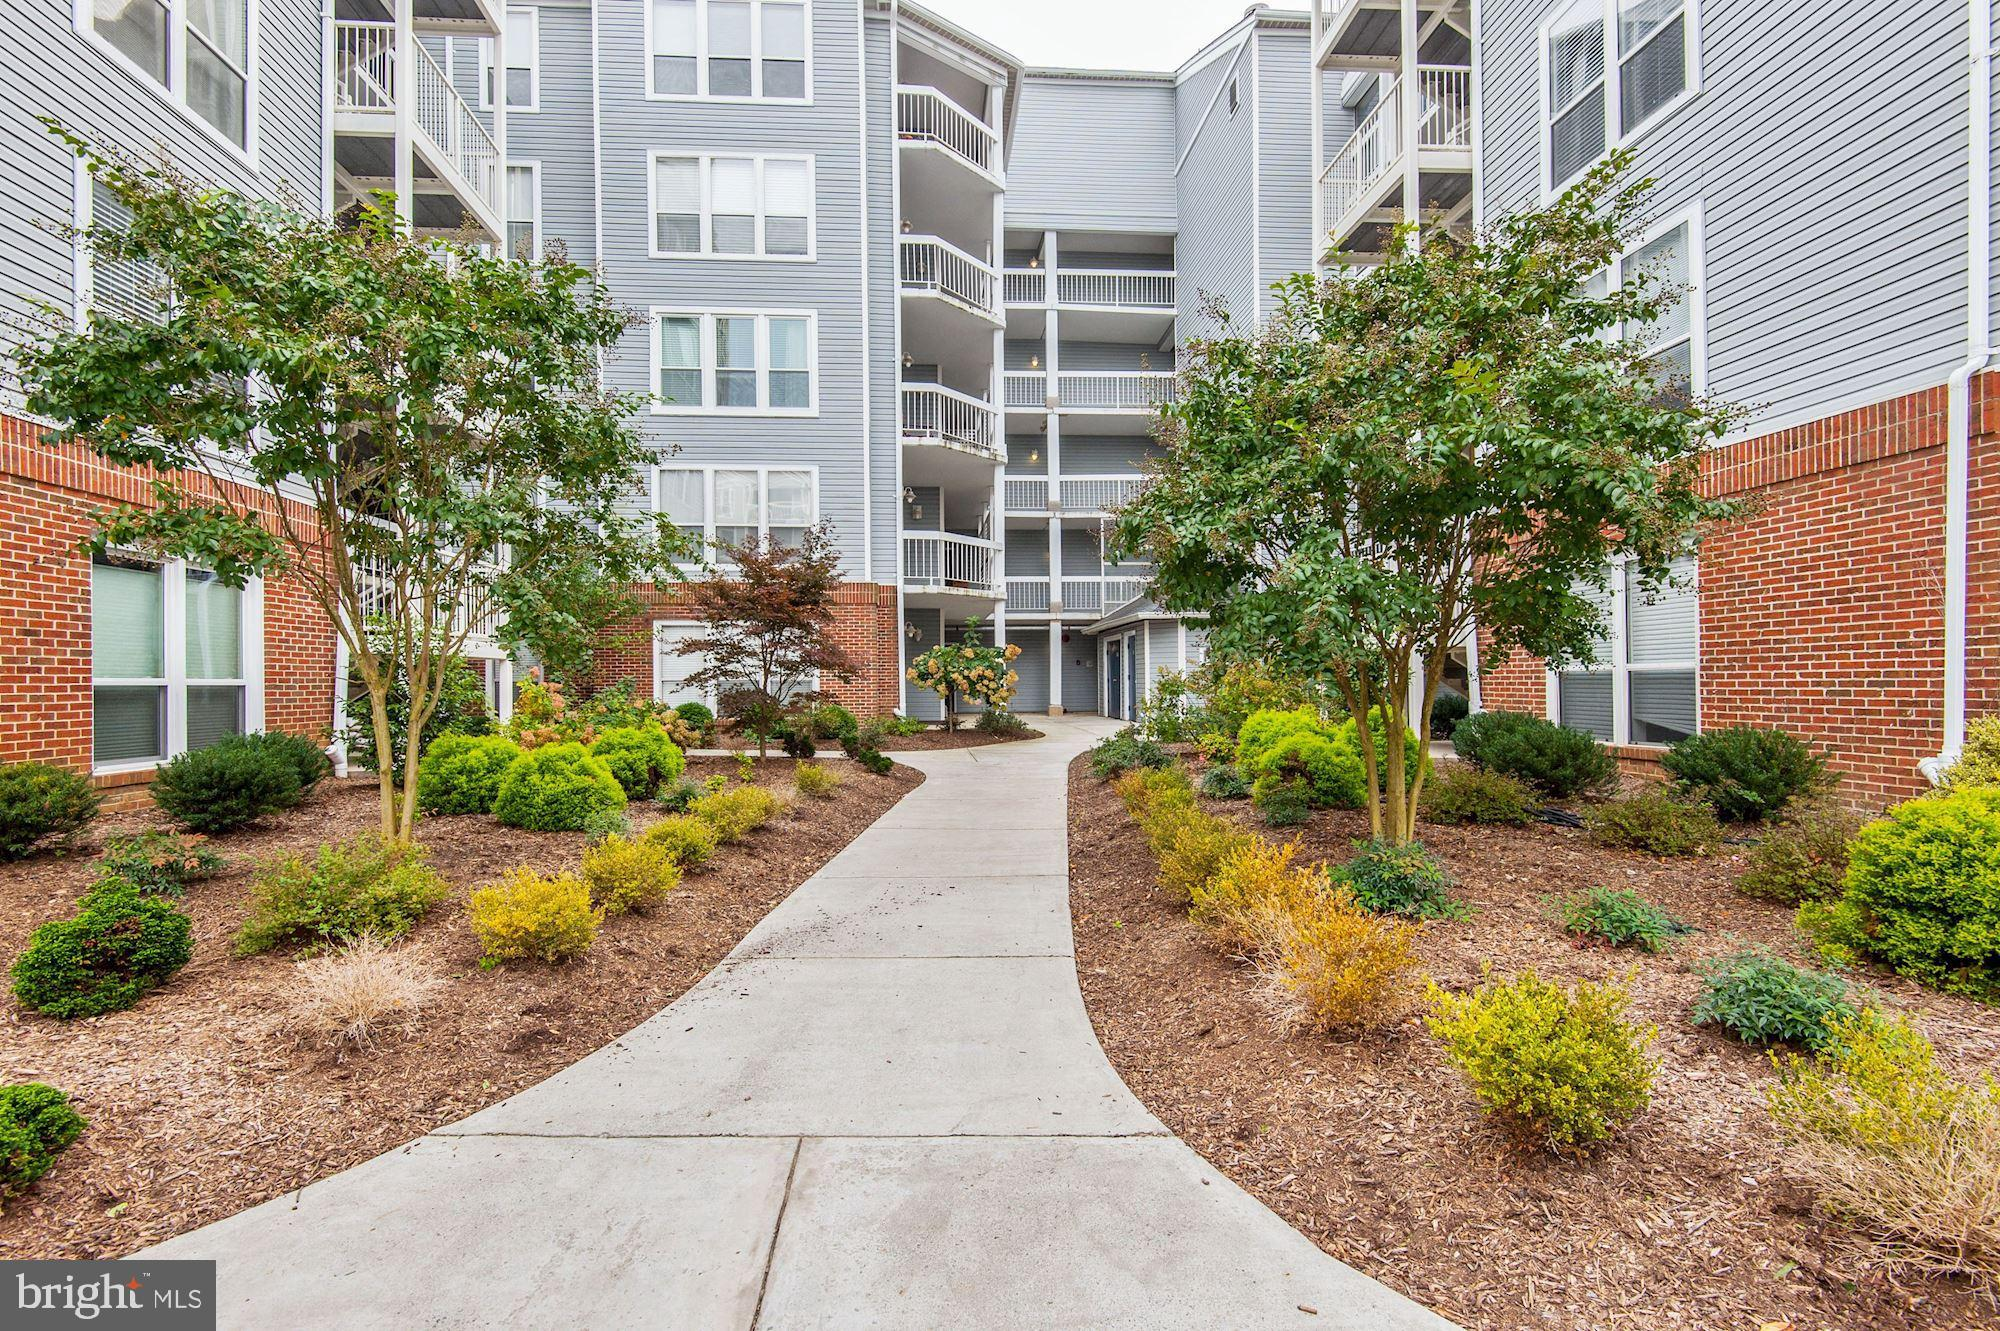 A DOUBLE WOW Fully Renovated Move-in-Ready 2 Bedroom, 2 Bath Top Floor End Unit Condo in Oakton with